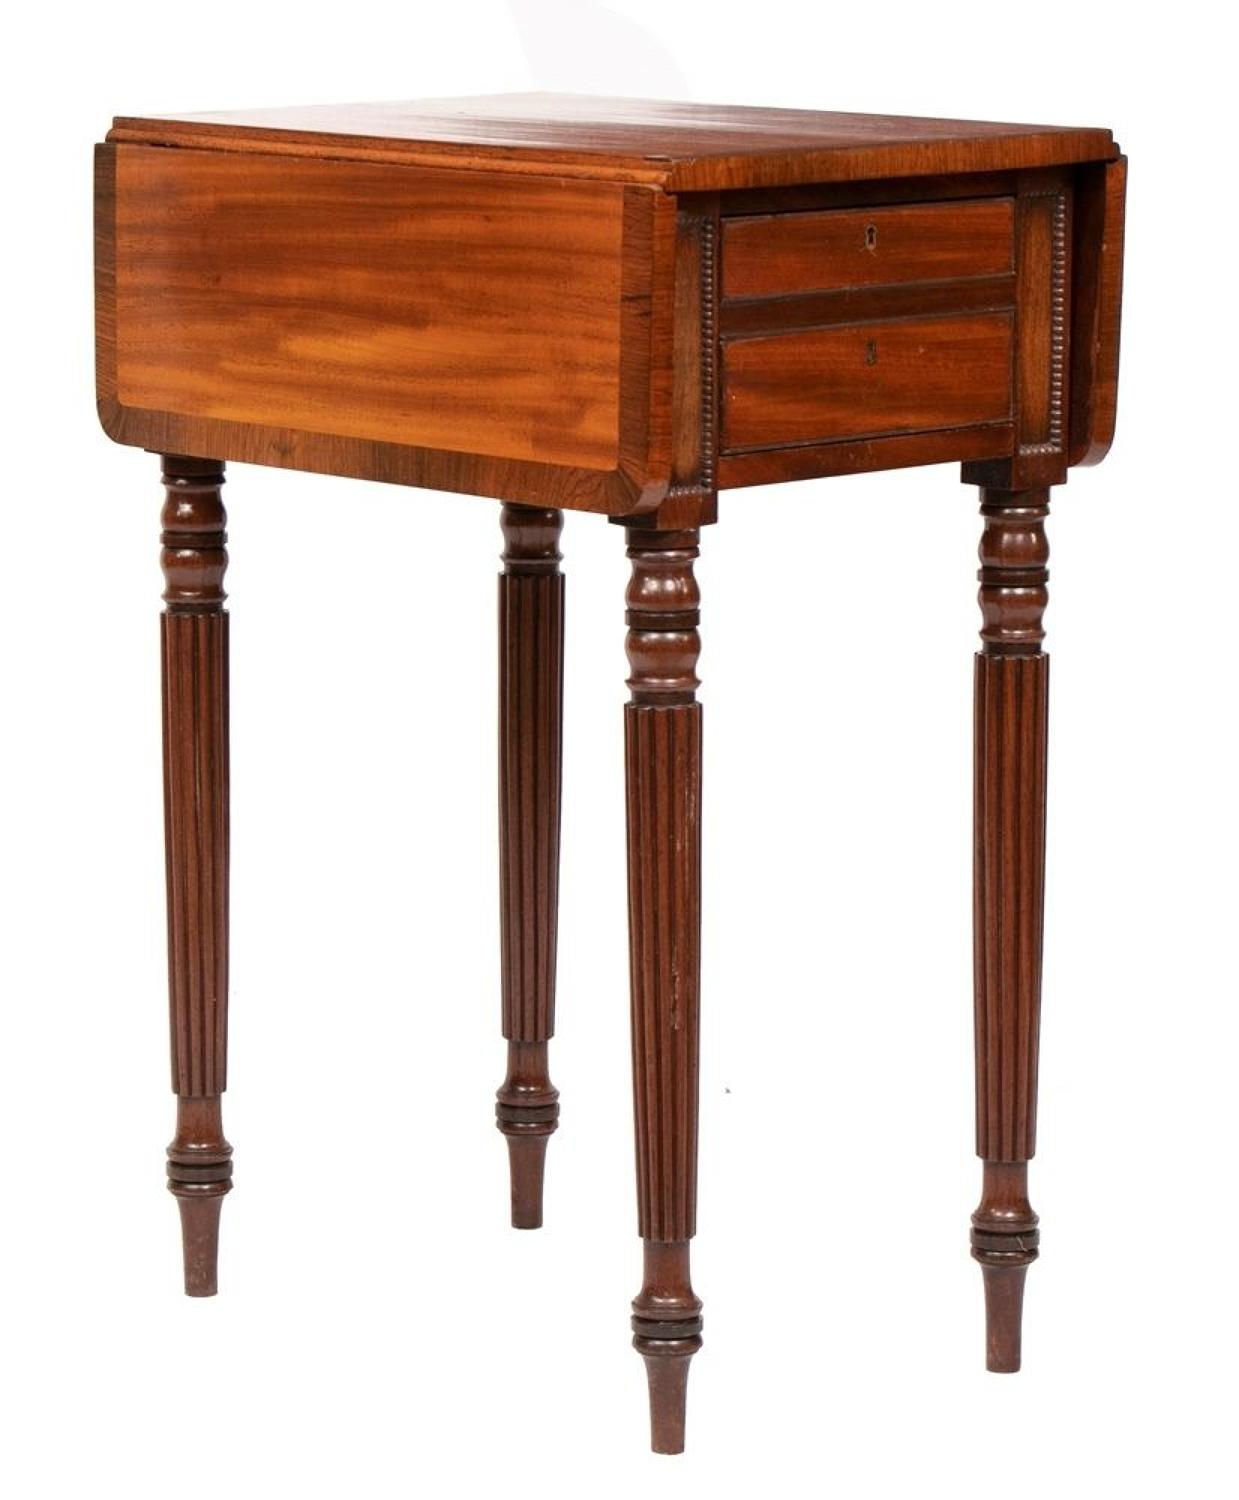 Antique Mahogany & Rosewood Gillows Side Table c.1820